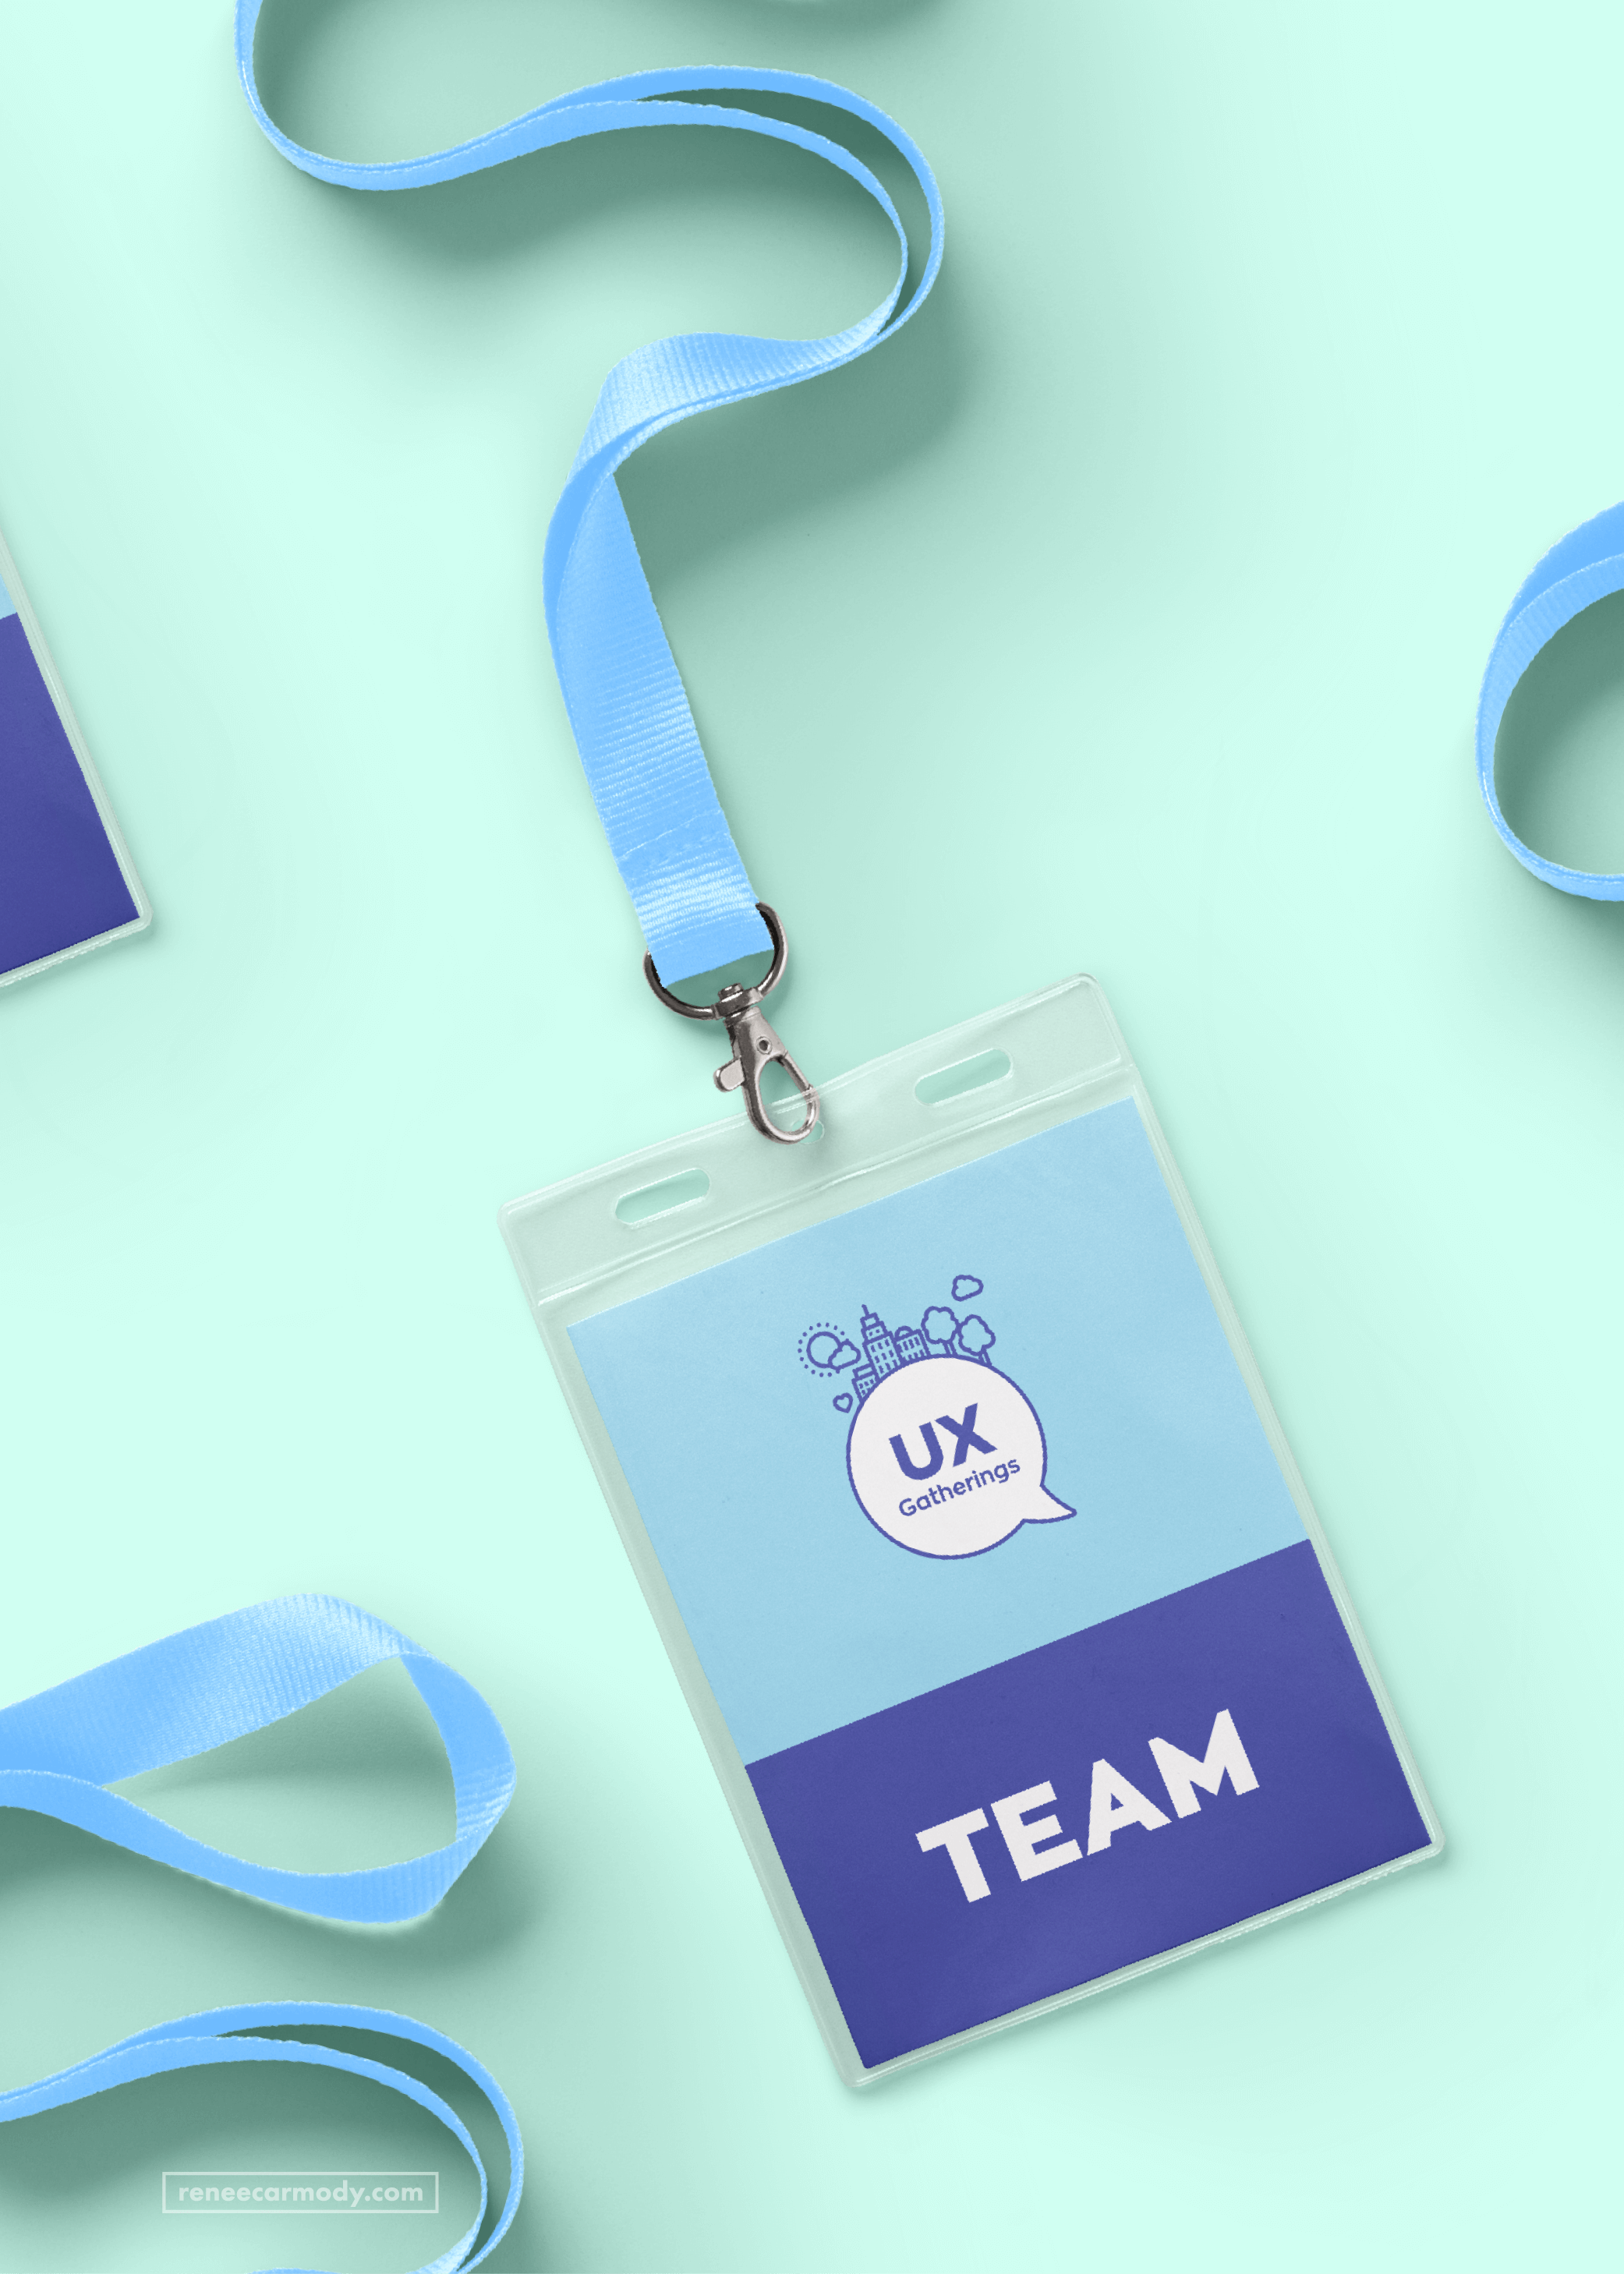 Event Lanyard and ID Card Design for UX Gatherings by Melbourne Brand and Graphic Designer Renée Carmody Design.